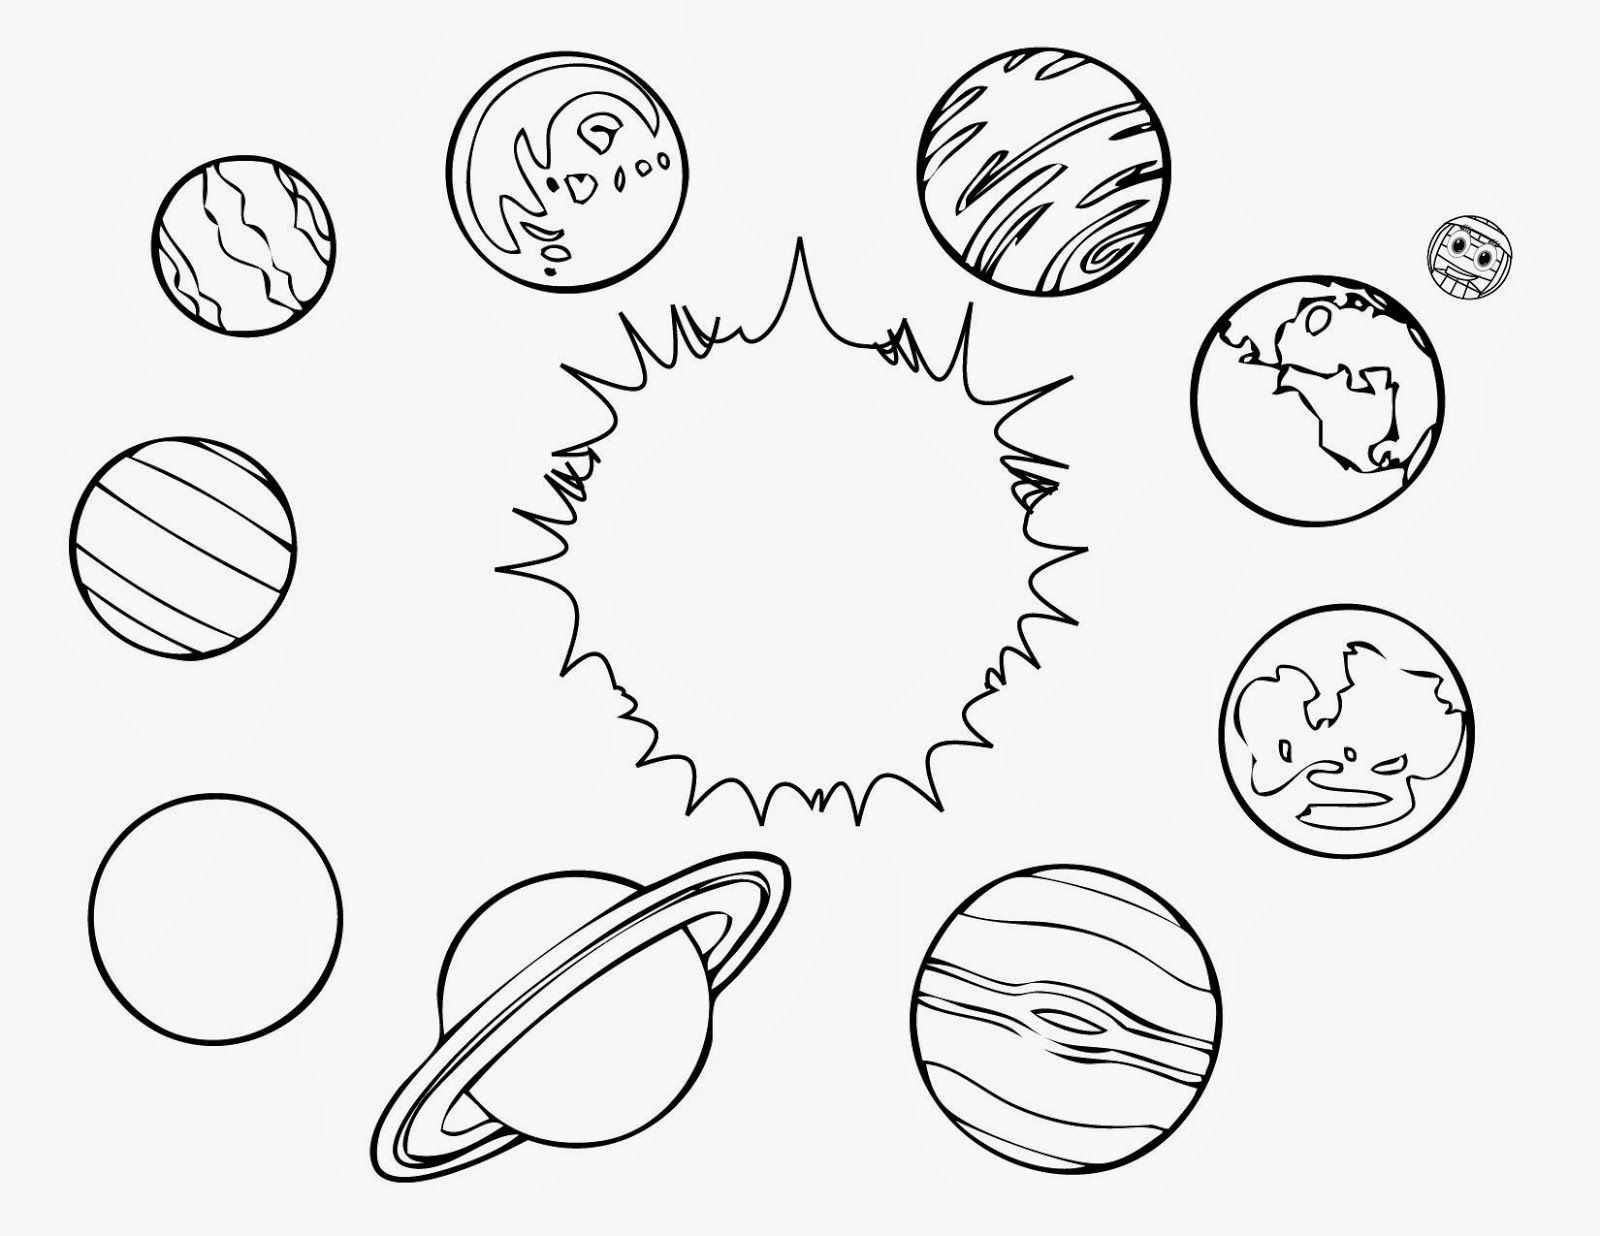 pictures of planets to color the planets in solar system coloring pages page 4 pics pictures planets color to of